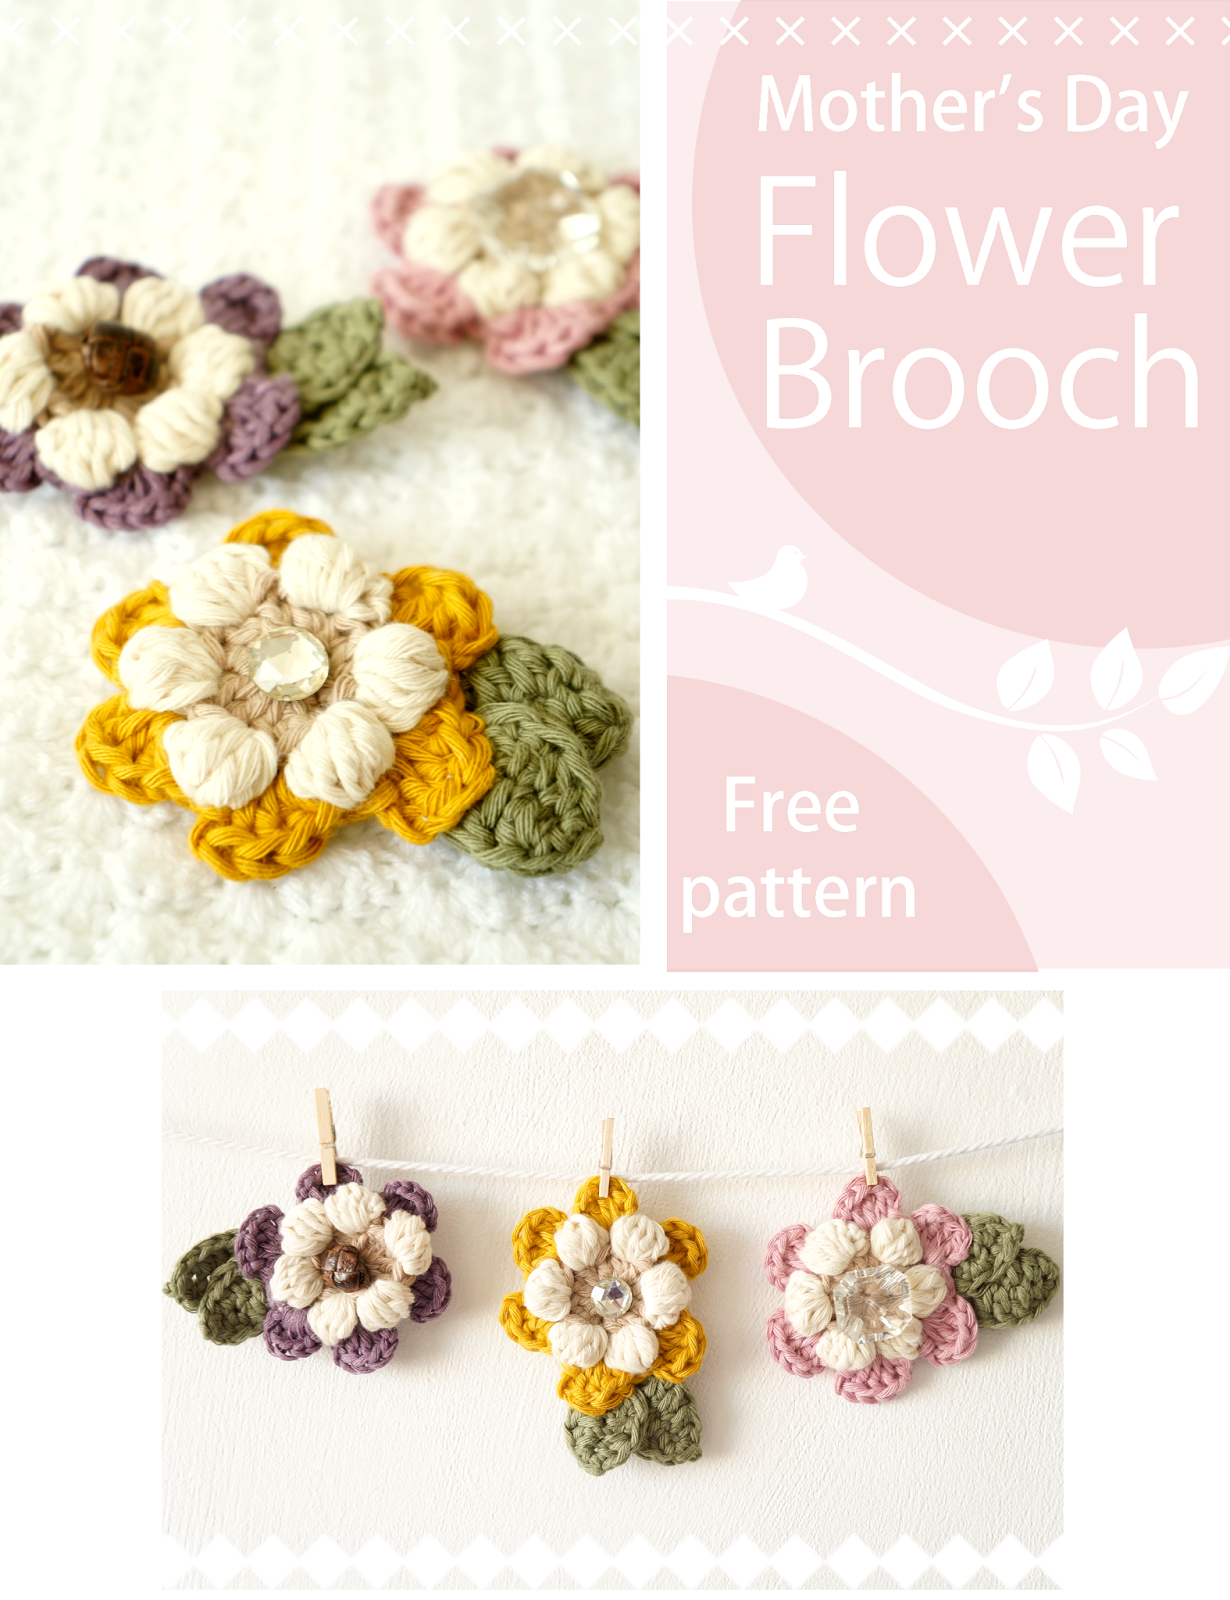 Mothers Day Flower Brooch Free Crochet Pattern - Craft ...